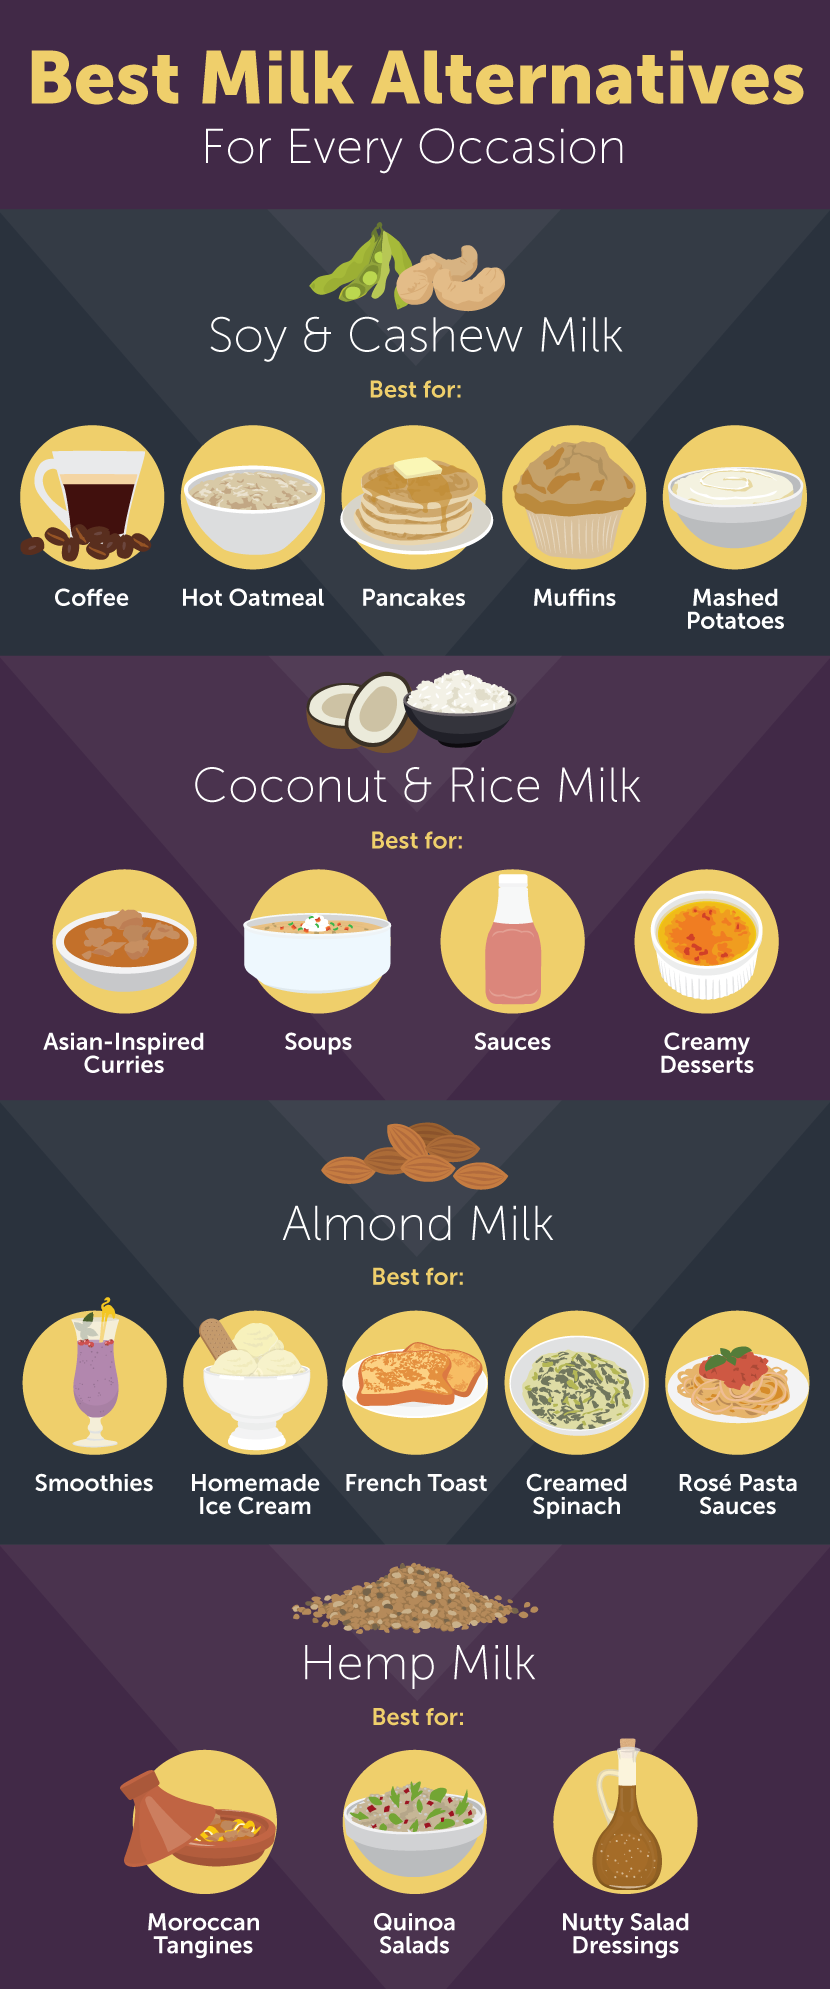 Best Milk Alternatives - 6 Nutritious Milk Alternatives to Try